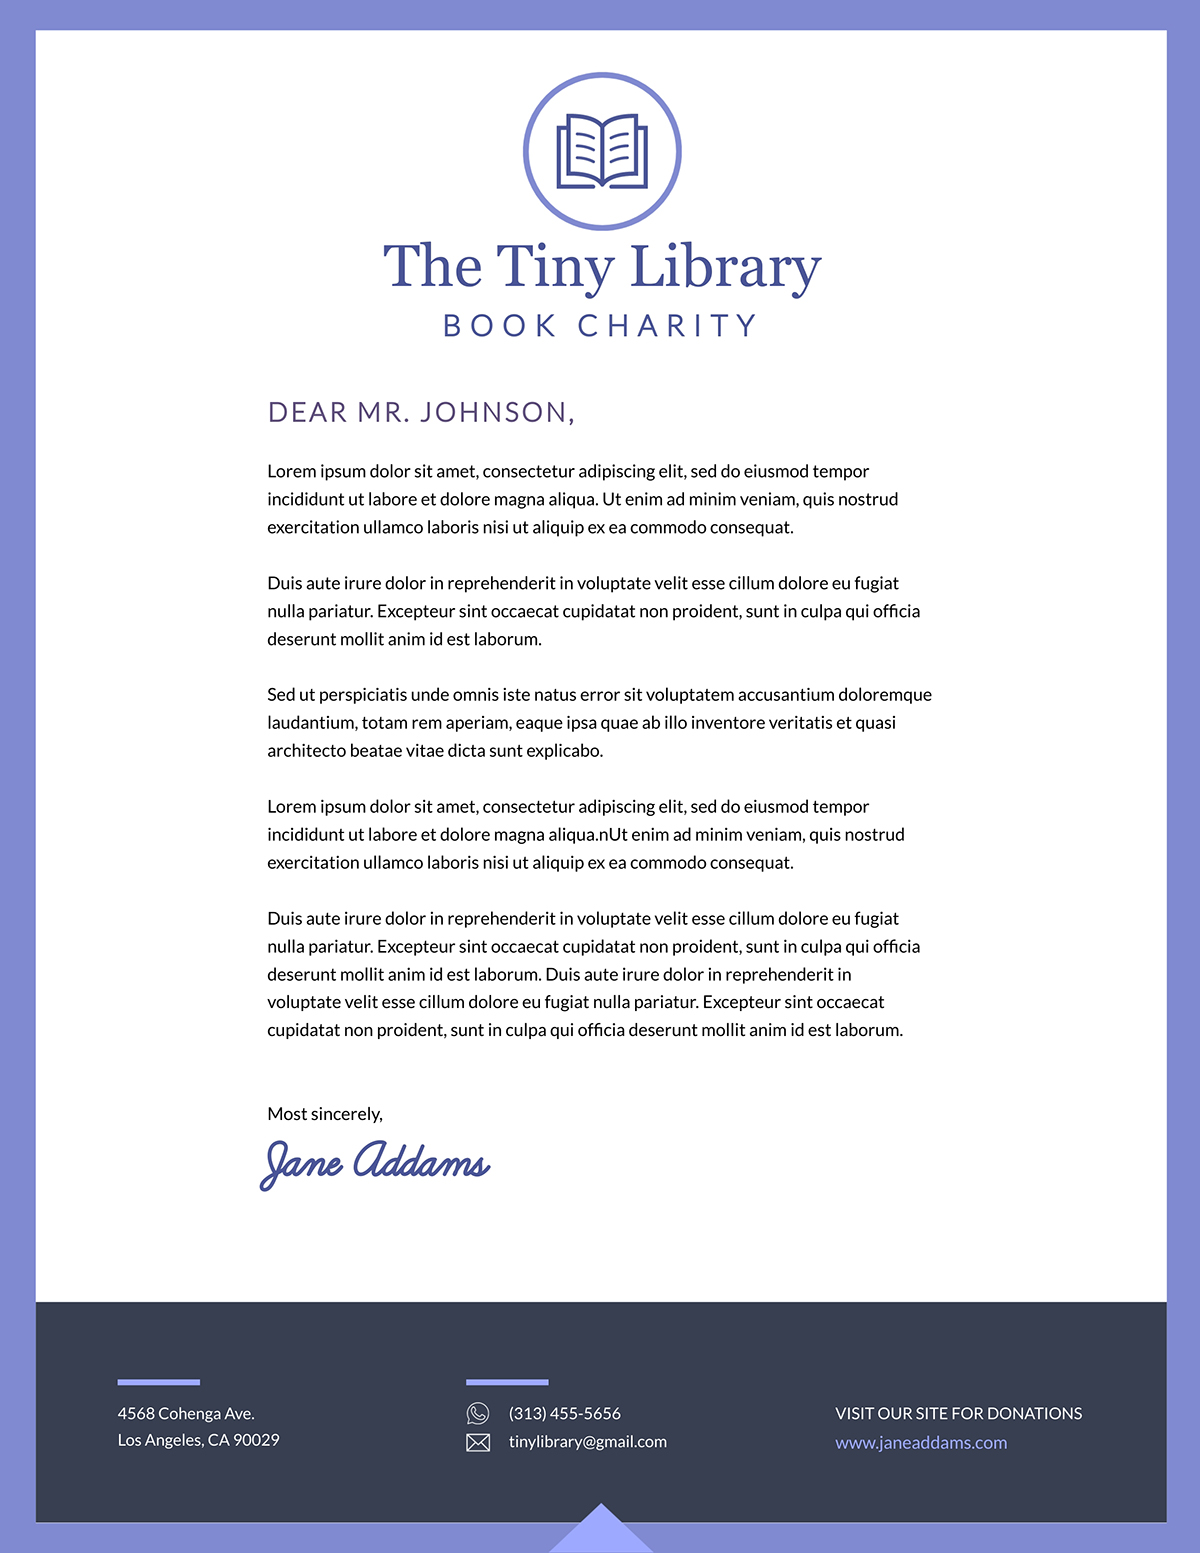 White and blue business letter template available in Visme.